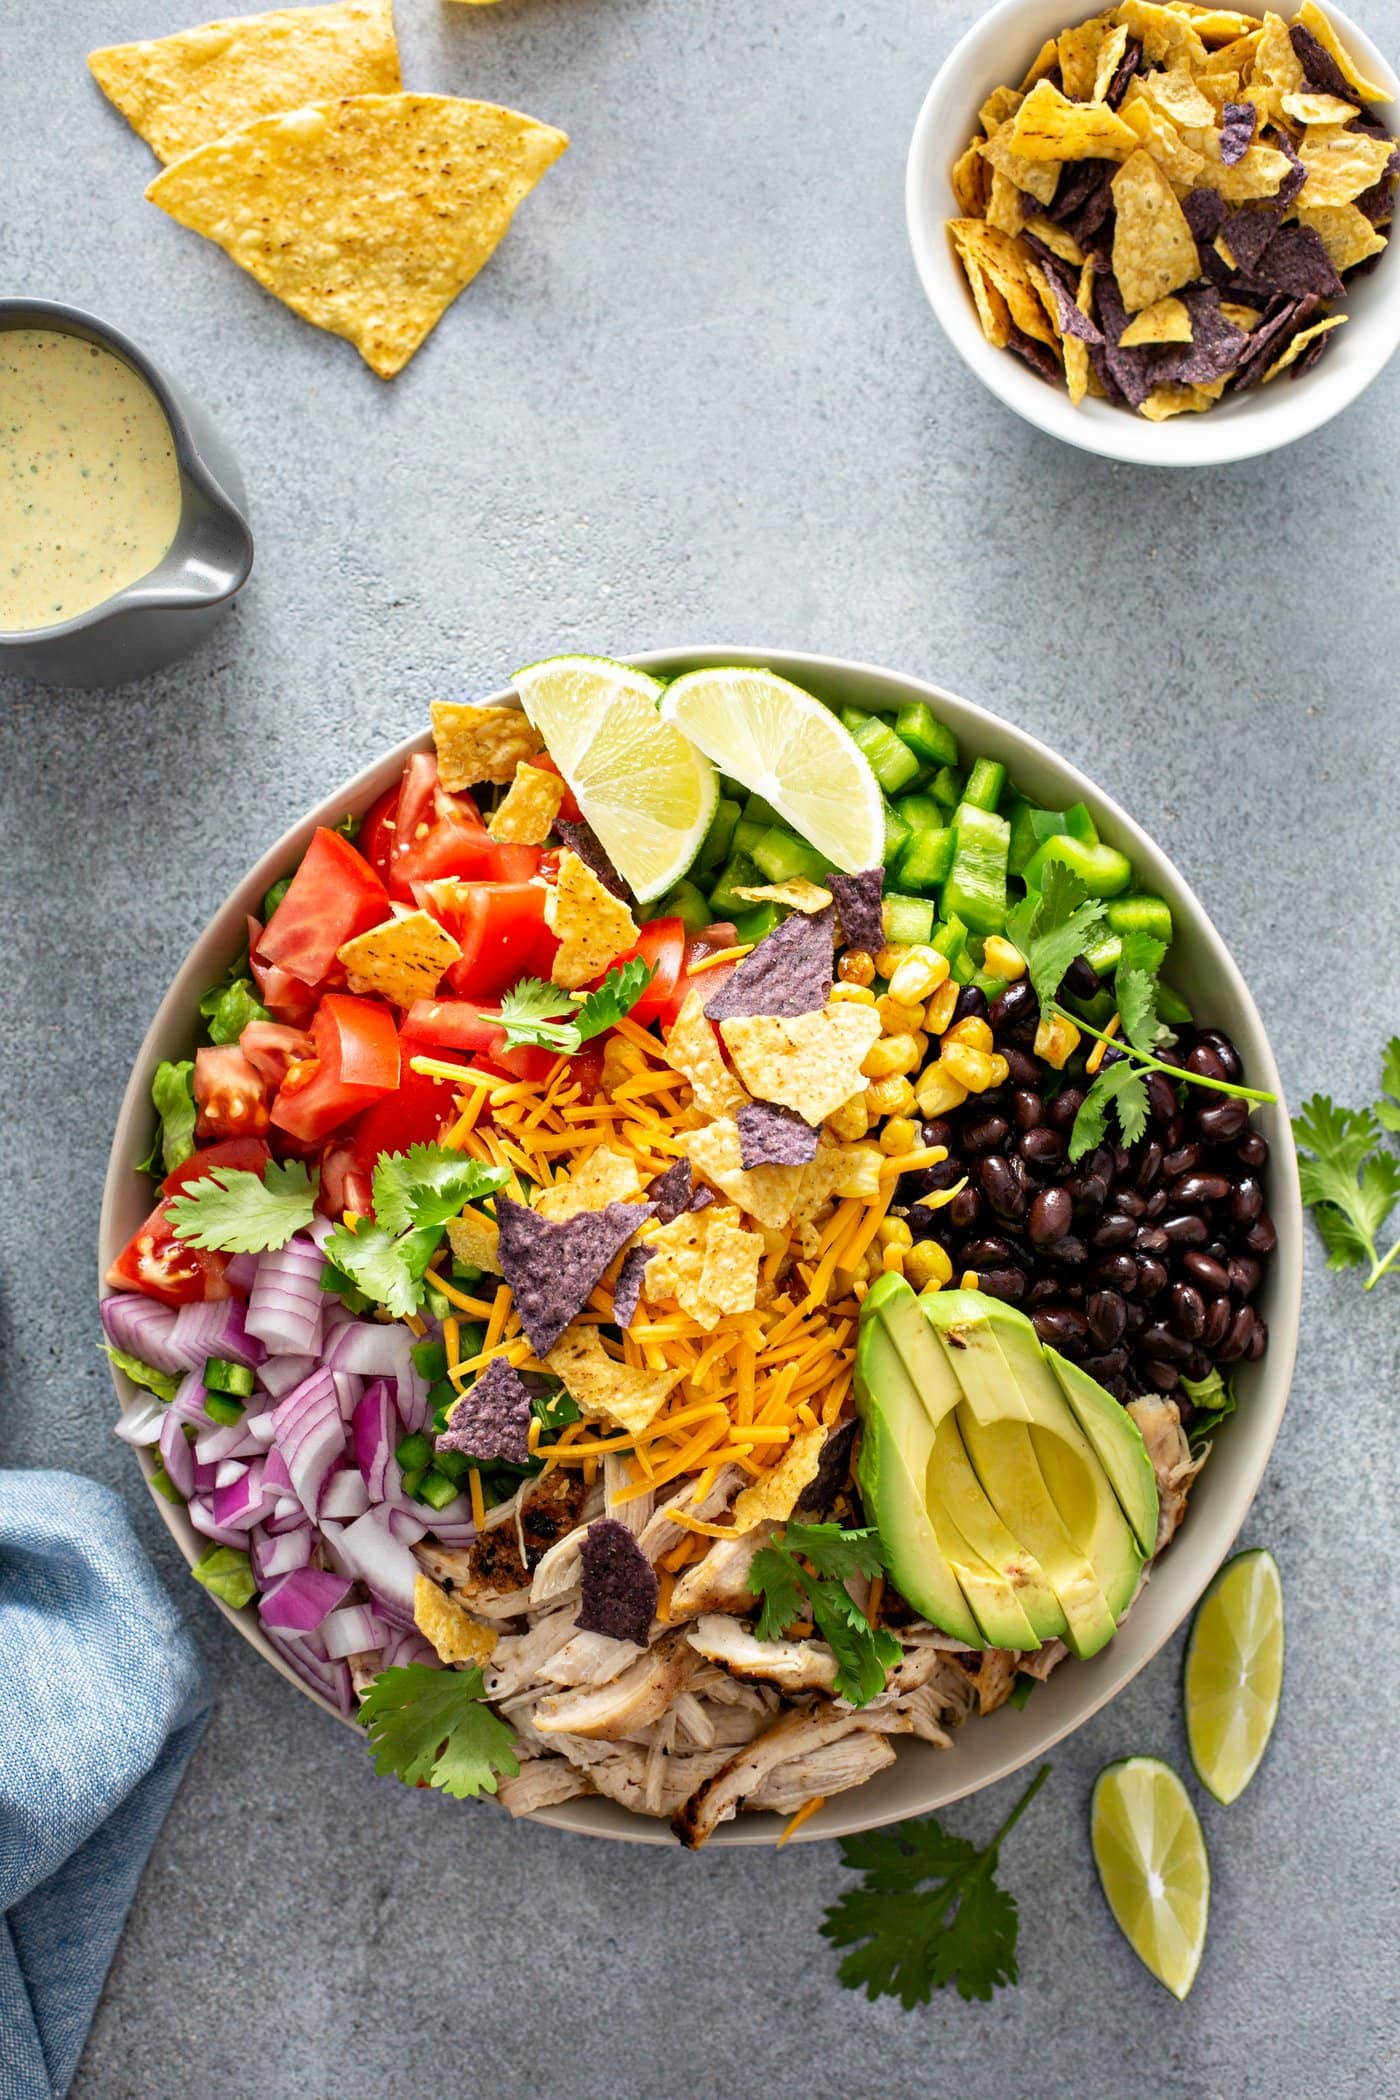 A chicken taco salad in a large bowl. It has chopped tomatoes, red onions, cheese, cilantro, lime wedges, chicken, corn, beans and peppers. There is also a sliced avocado. There are chips and a small container of dressing in the background.